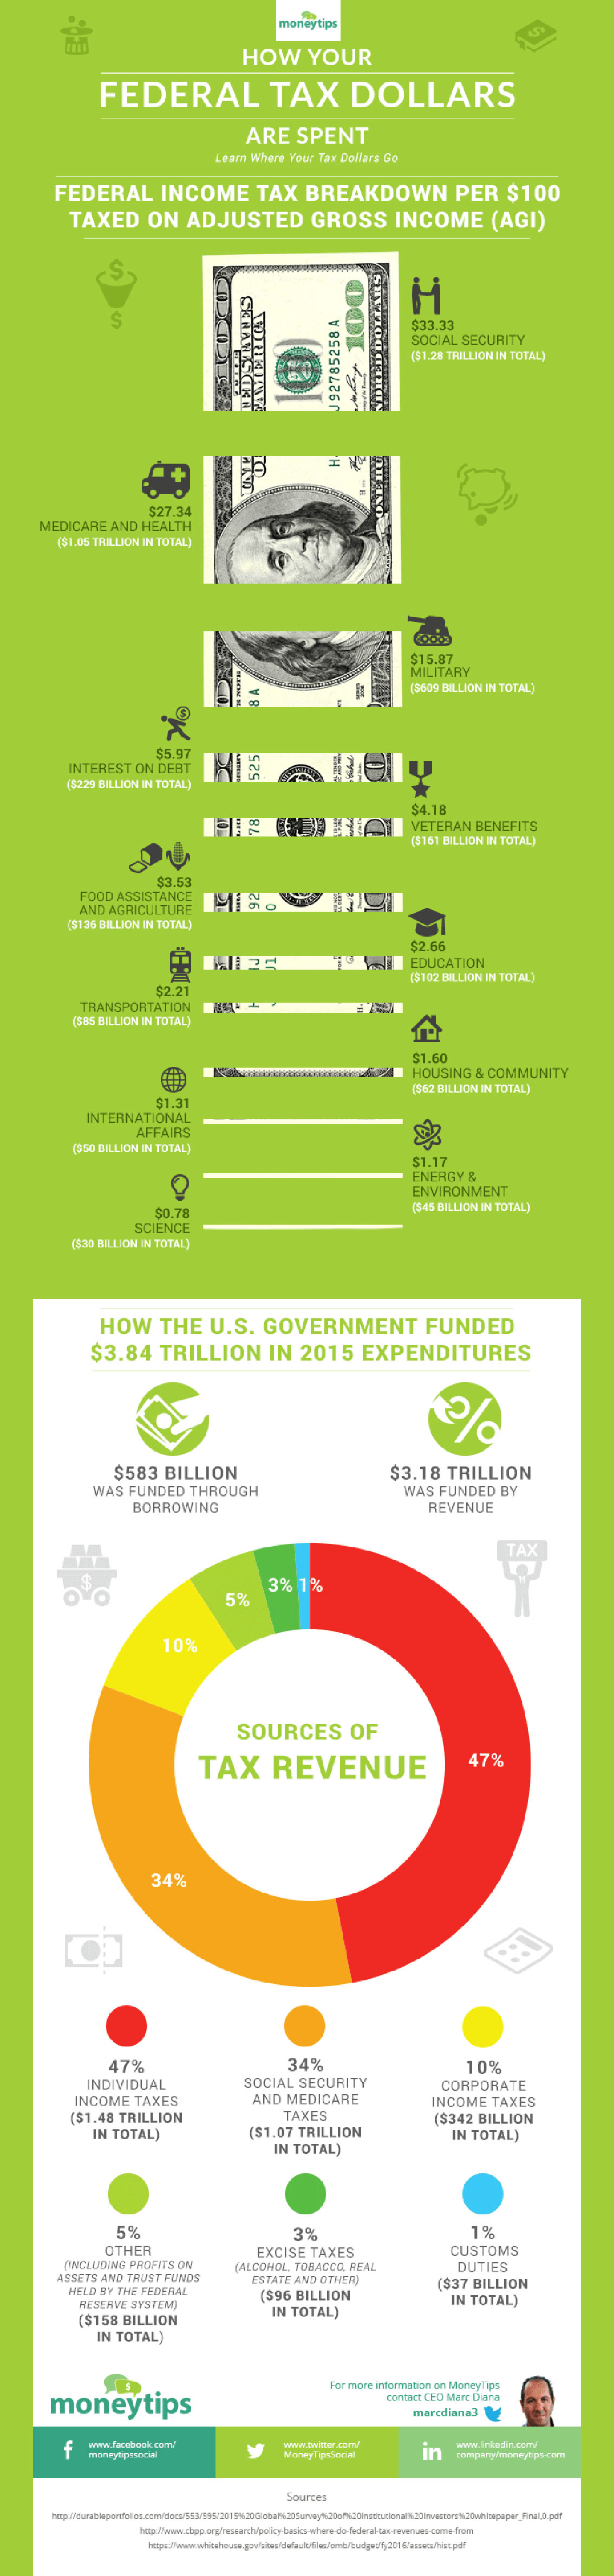 How Your Federal Tax Dollars are Spent Infographic